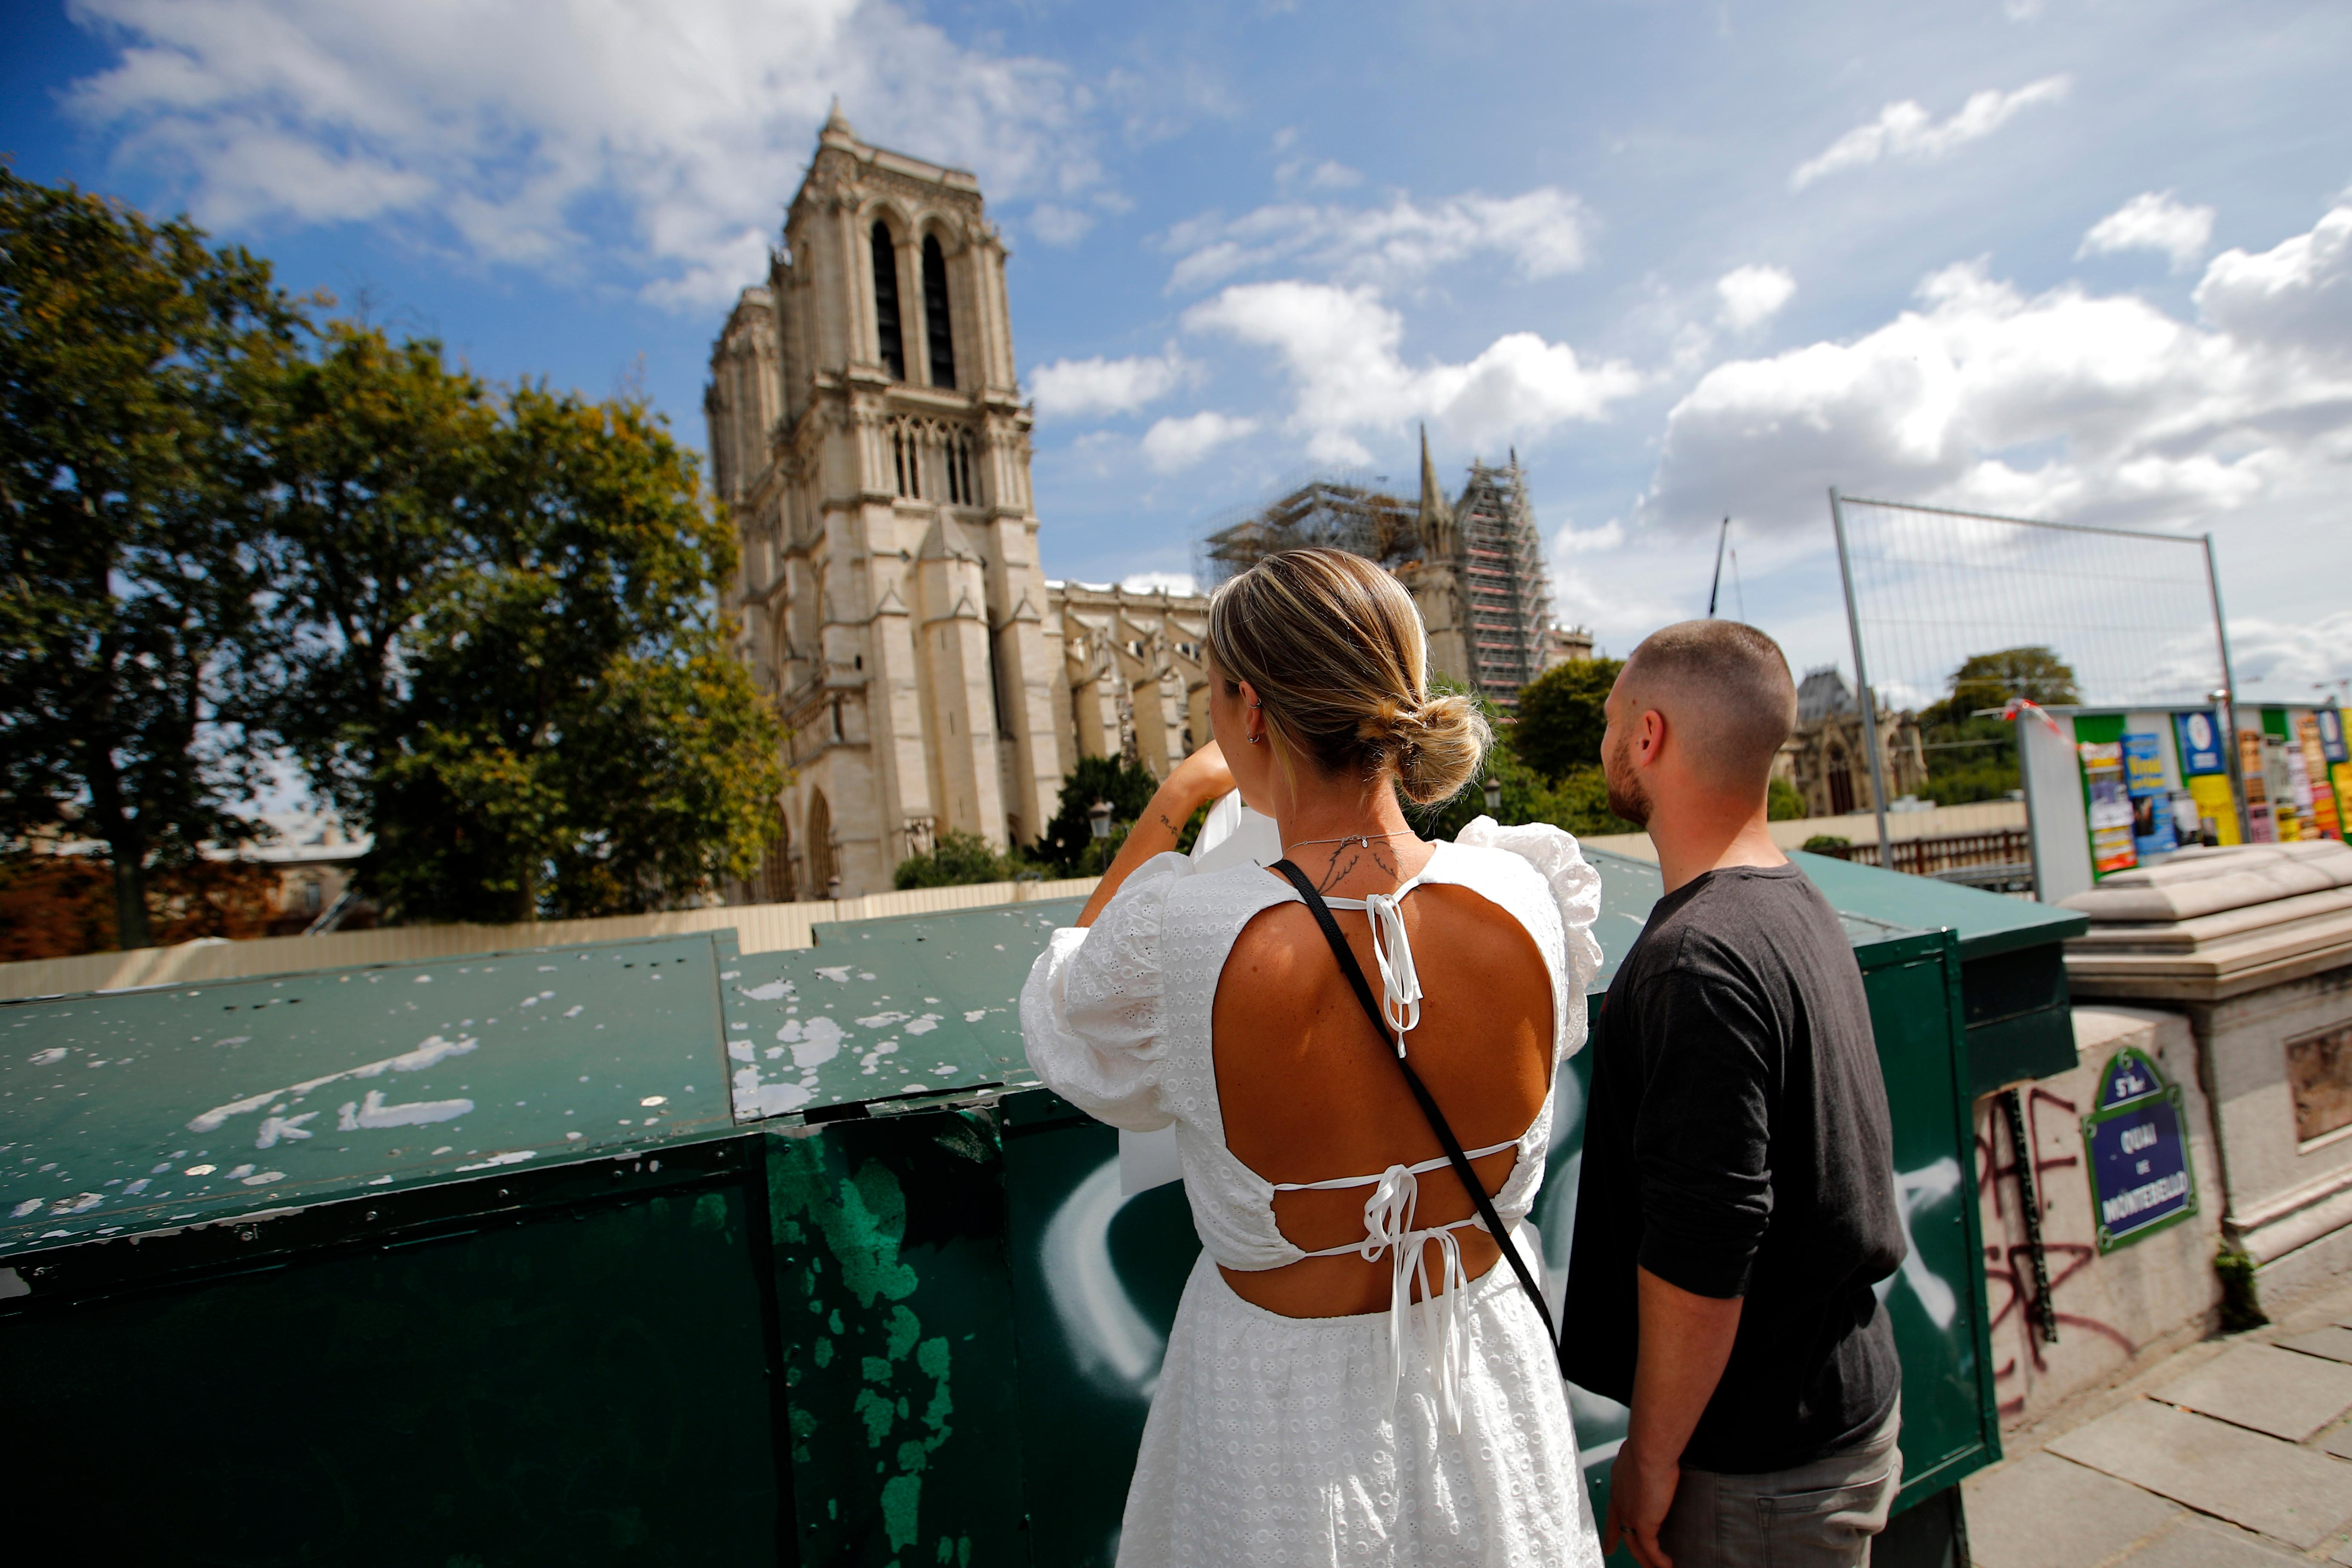 Tourists take a look around the Notre Dame Cathedral ahead of the start of a massive lead decontamination in Paris, Friday, Aug. 16, 2019. (AP Photo/Francois Mori)